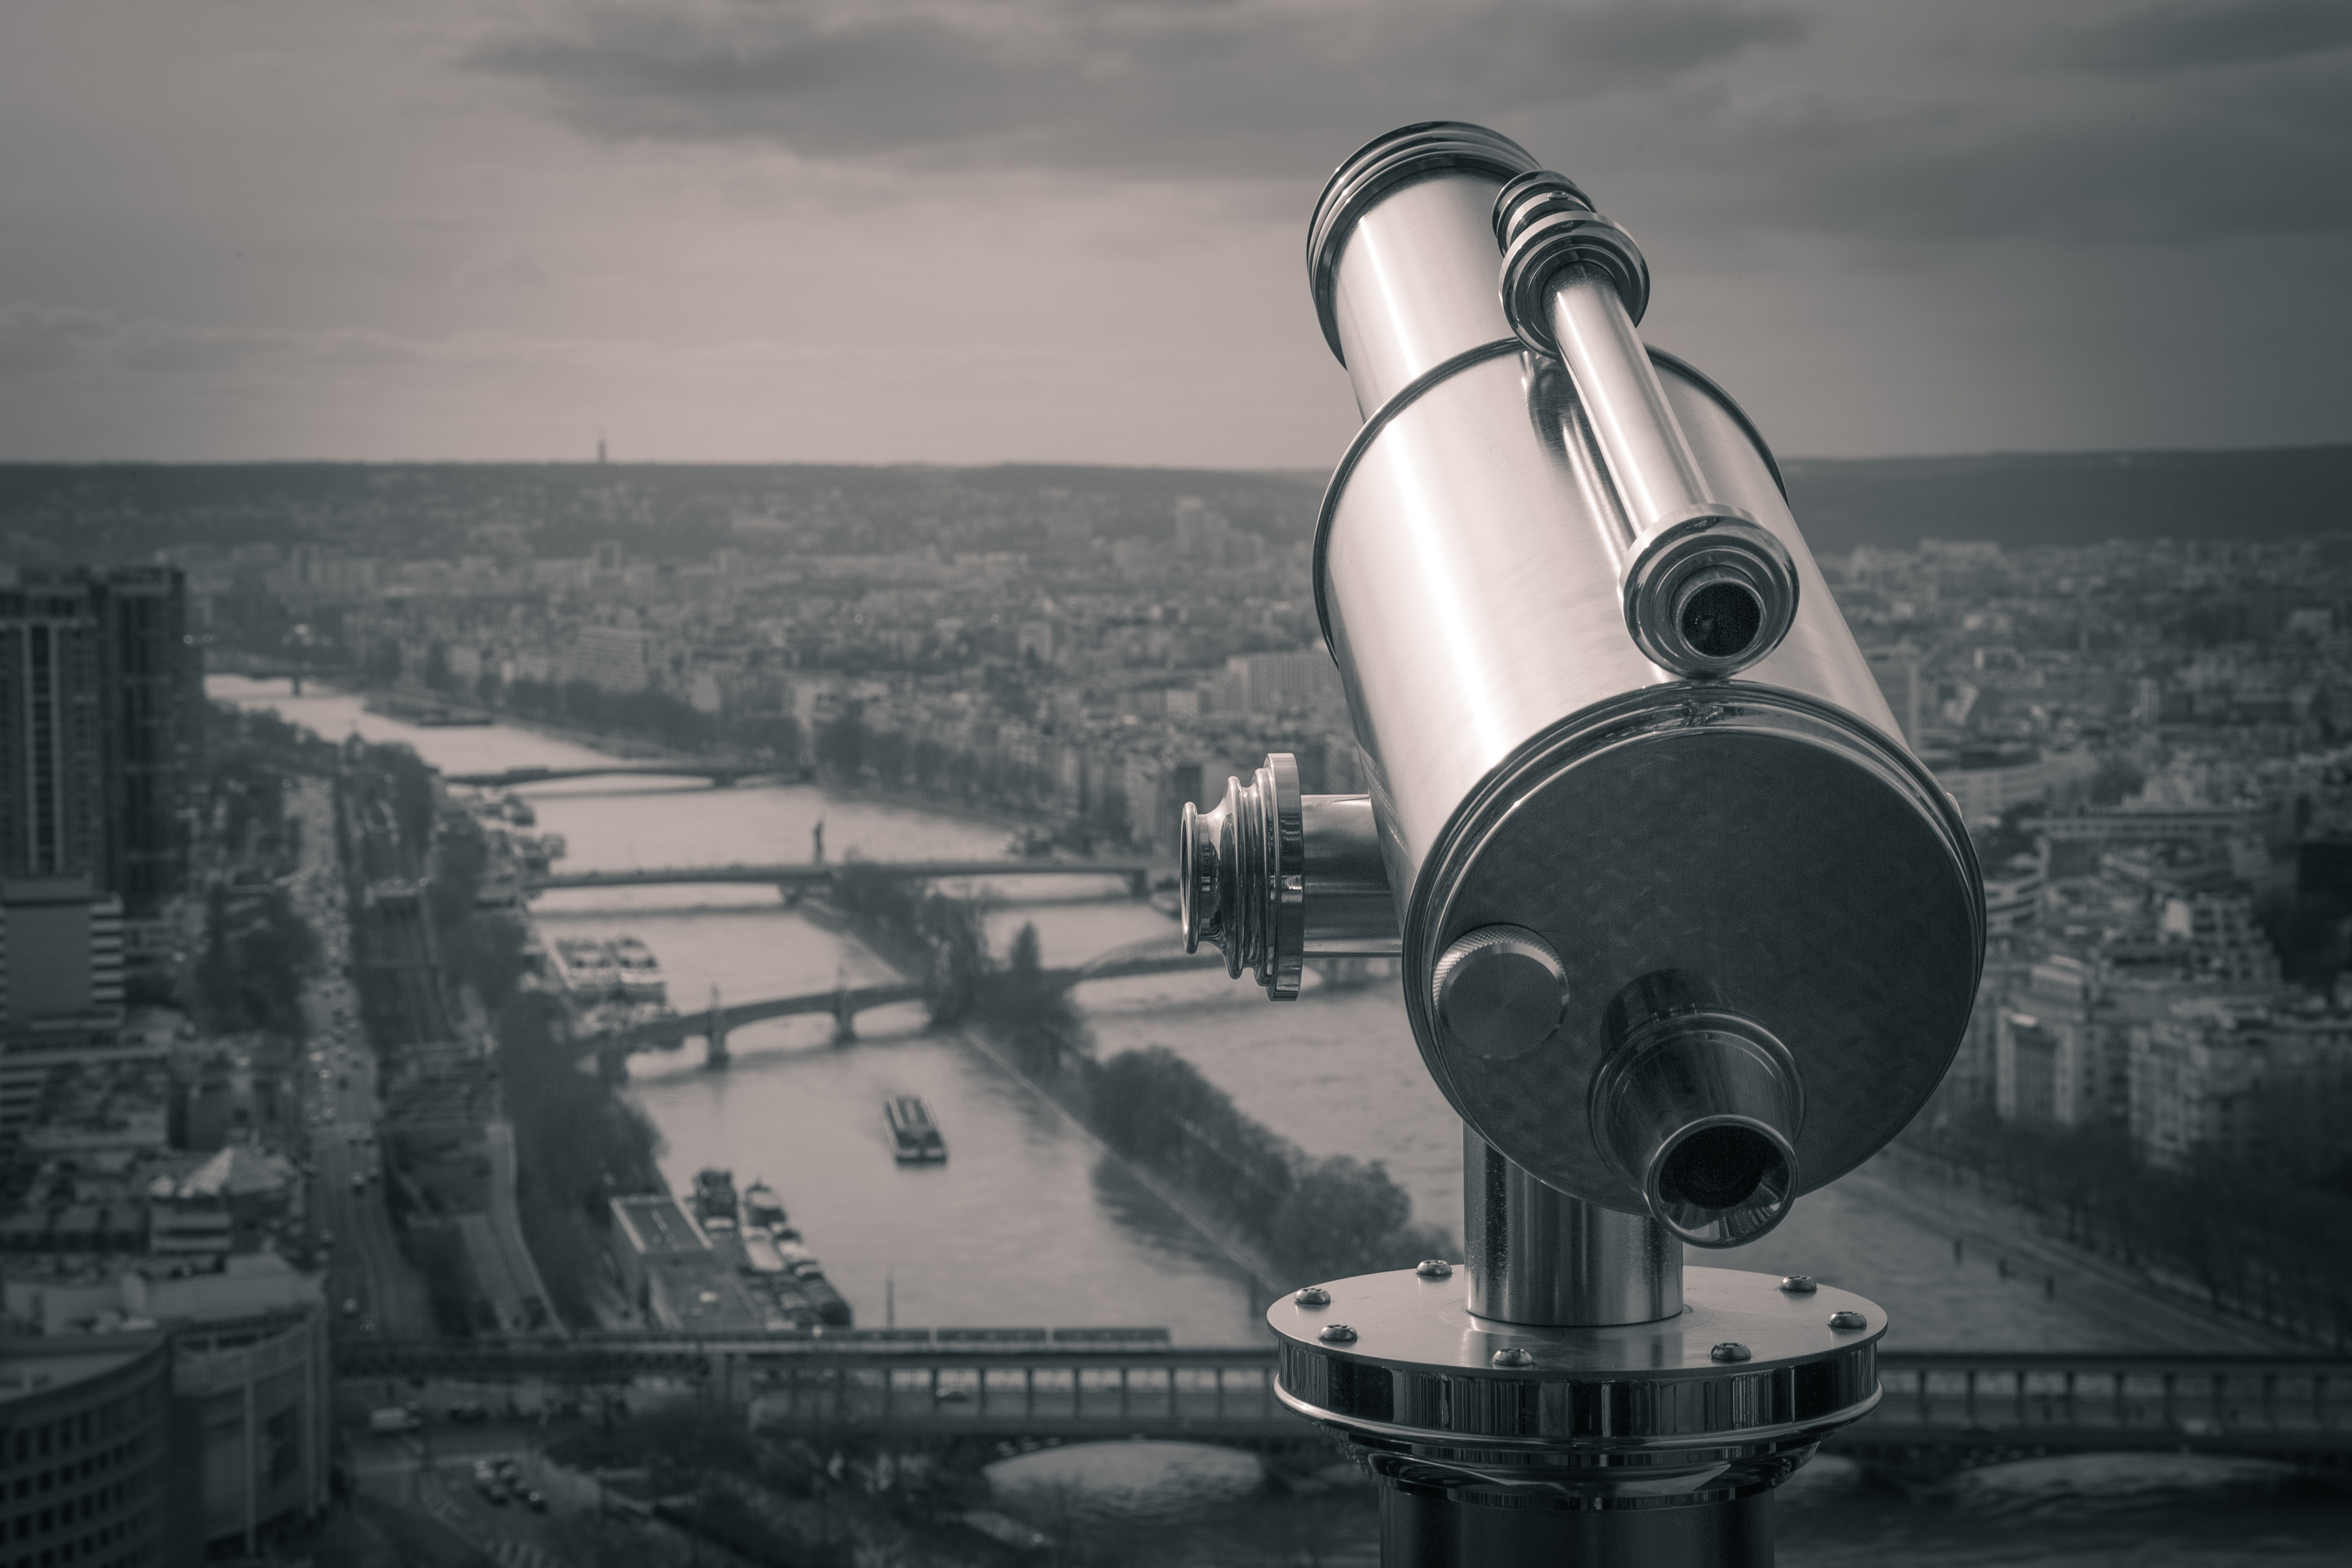 Grayscale Photography of Observation Telescope Overlooking City Riverbank, Architecture, Outdoors, Water, View deck, HQ Photo